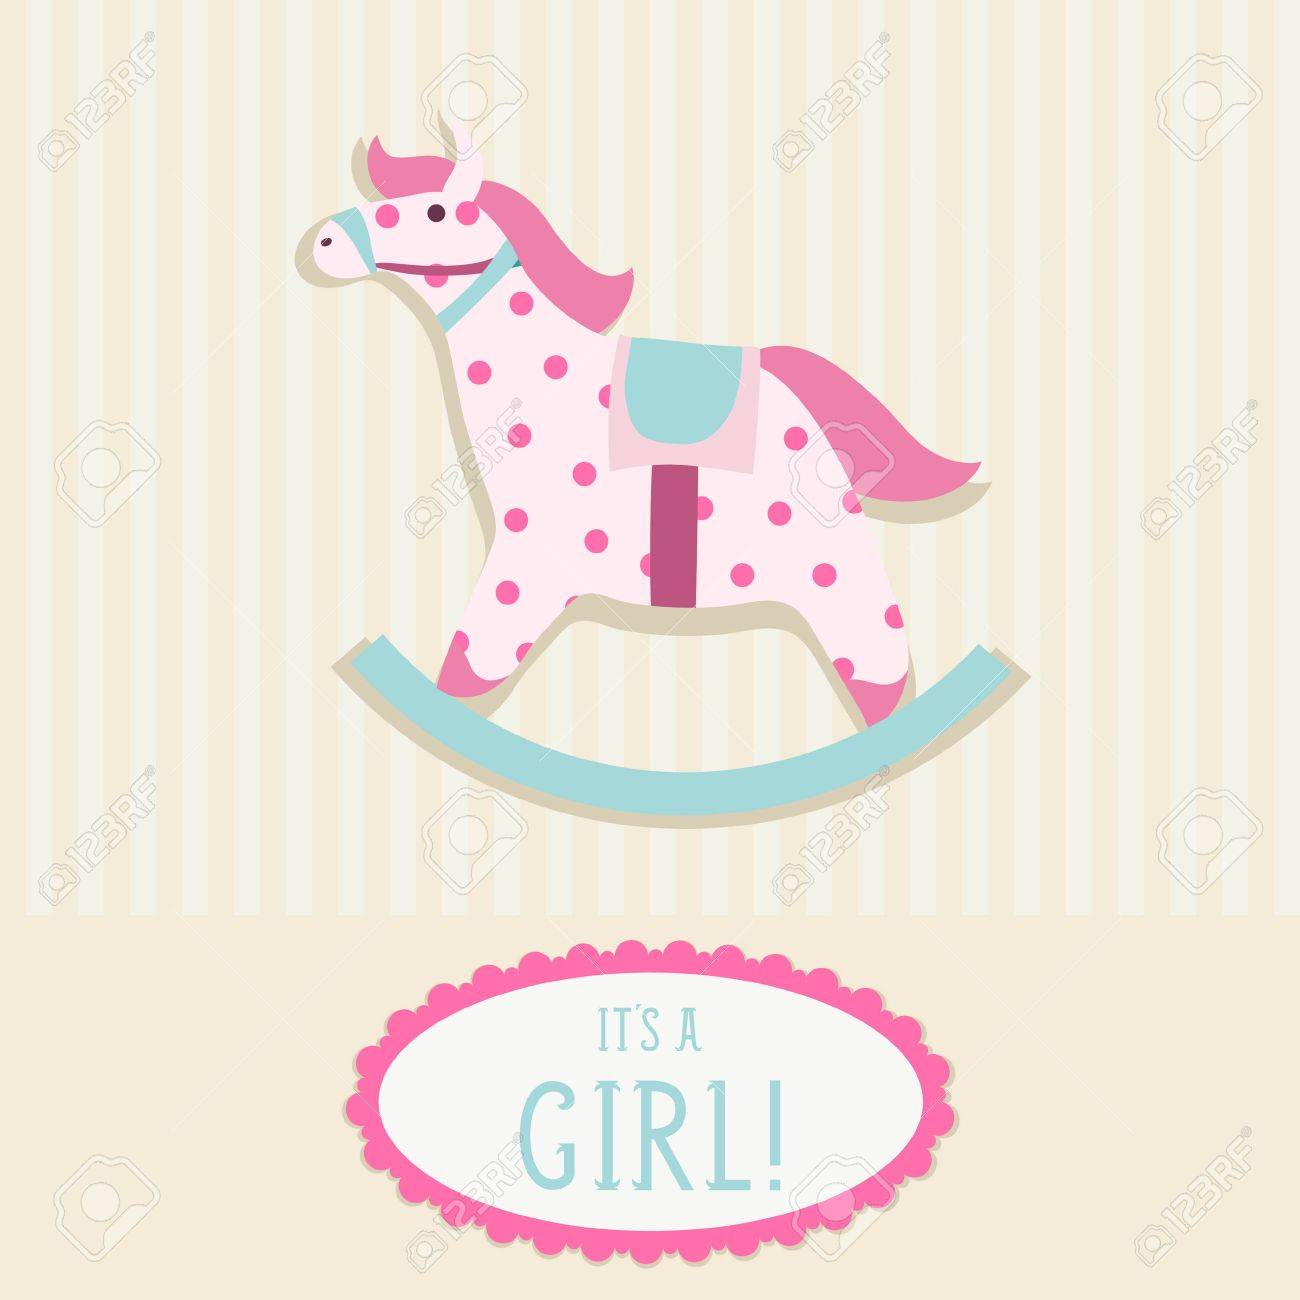 Baby Shower Invitation Card Template With Rocking Horse Royalty ...